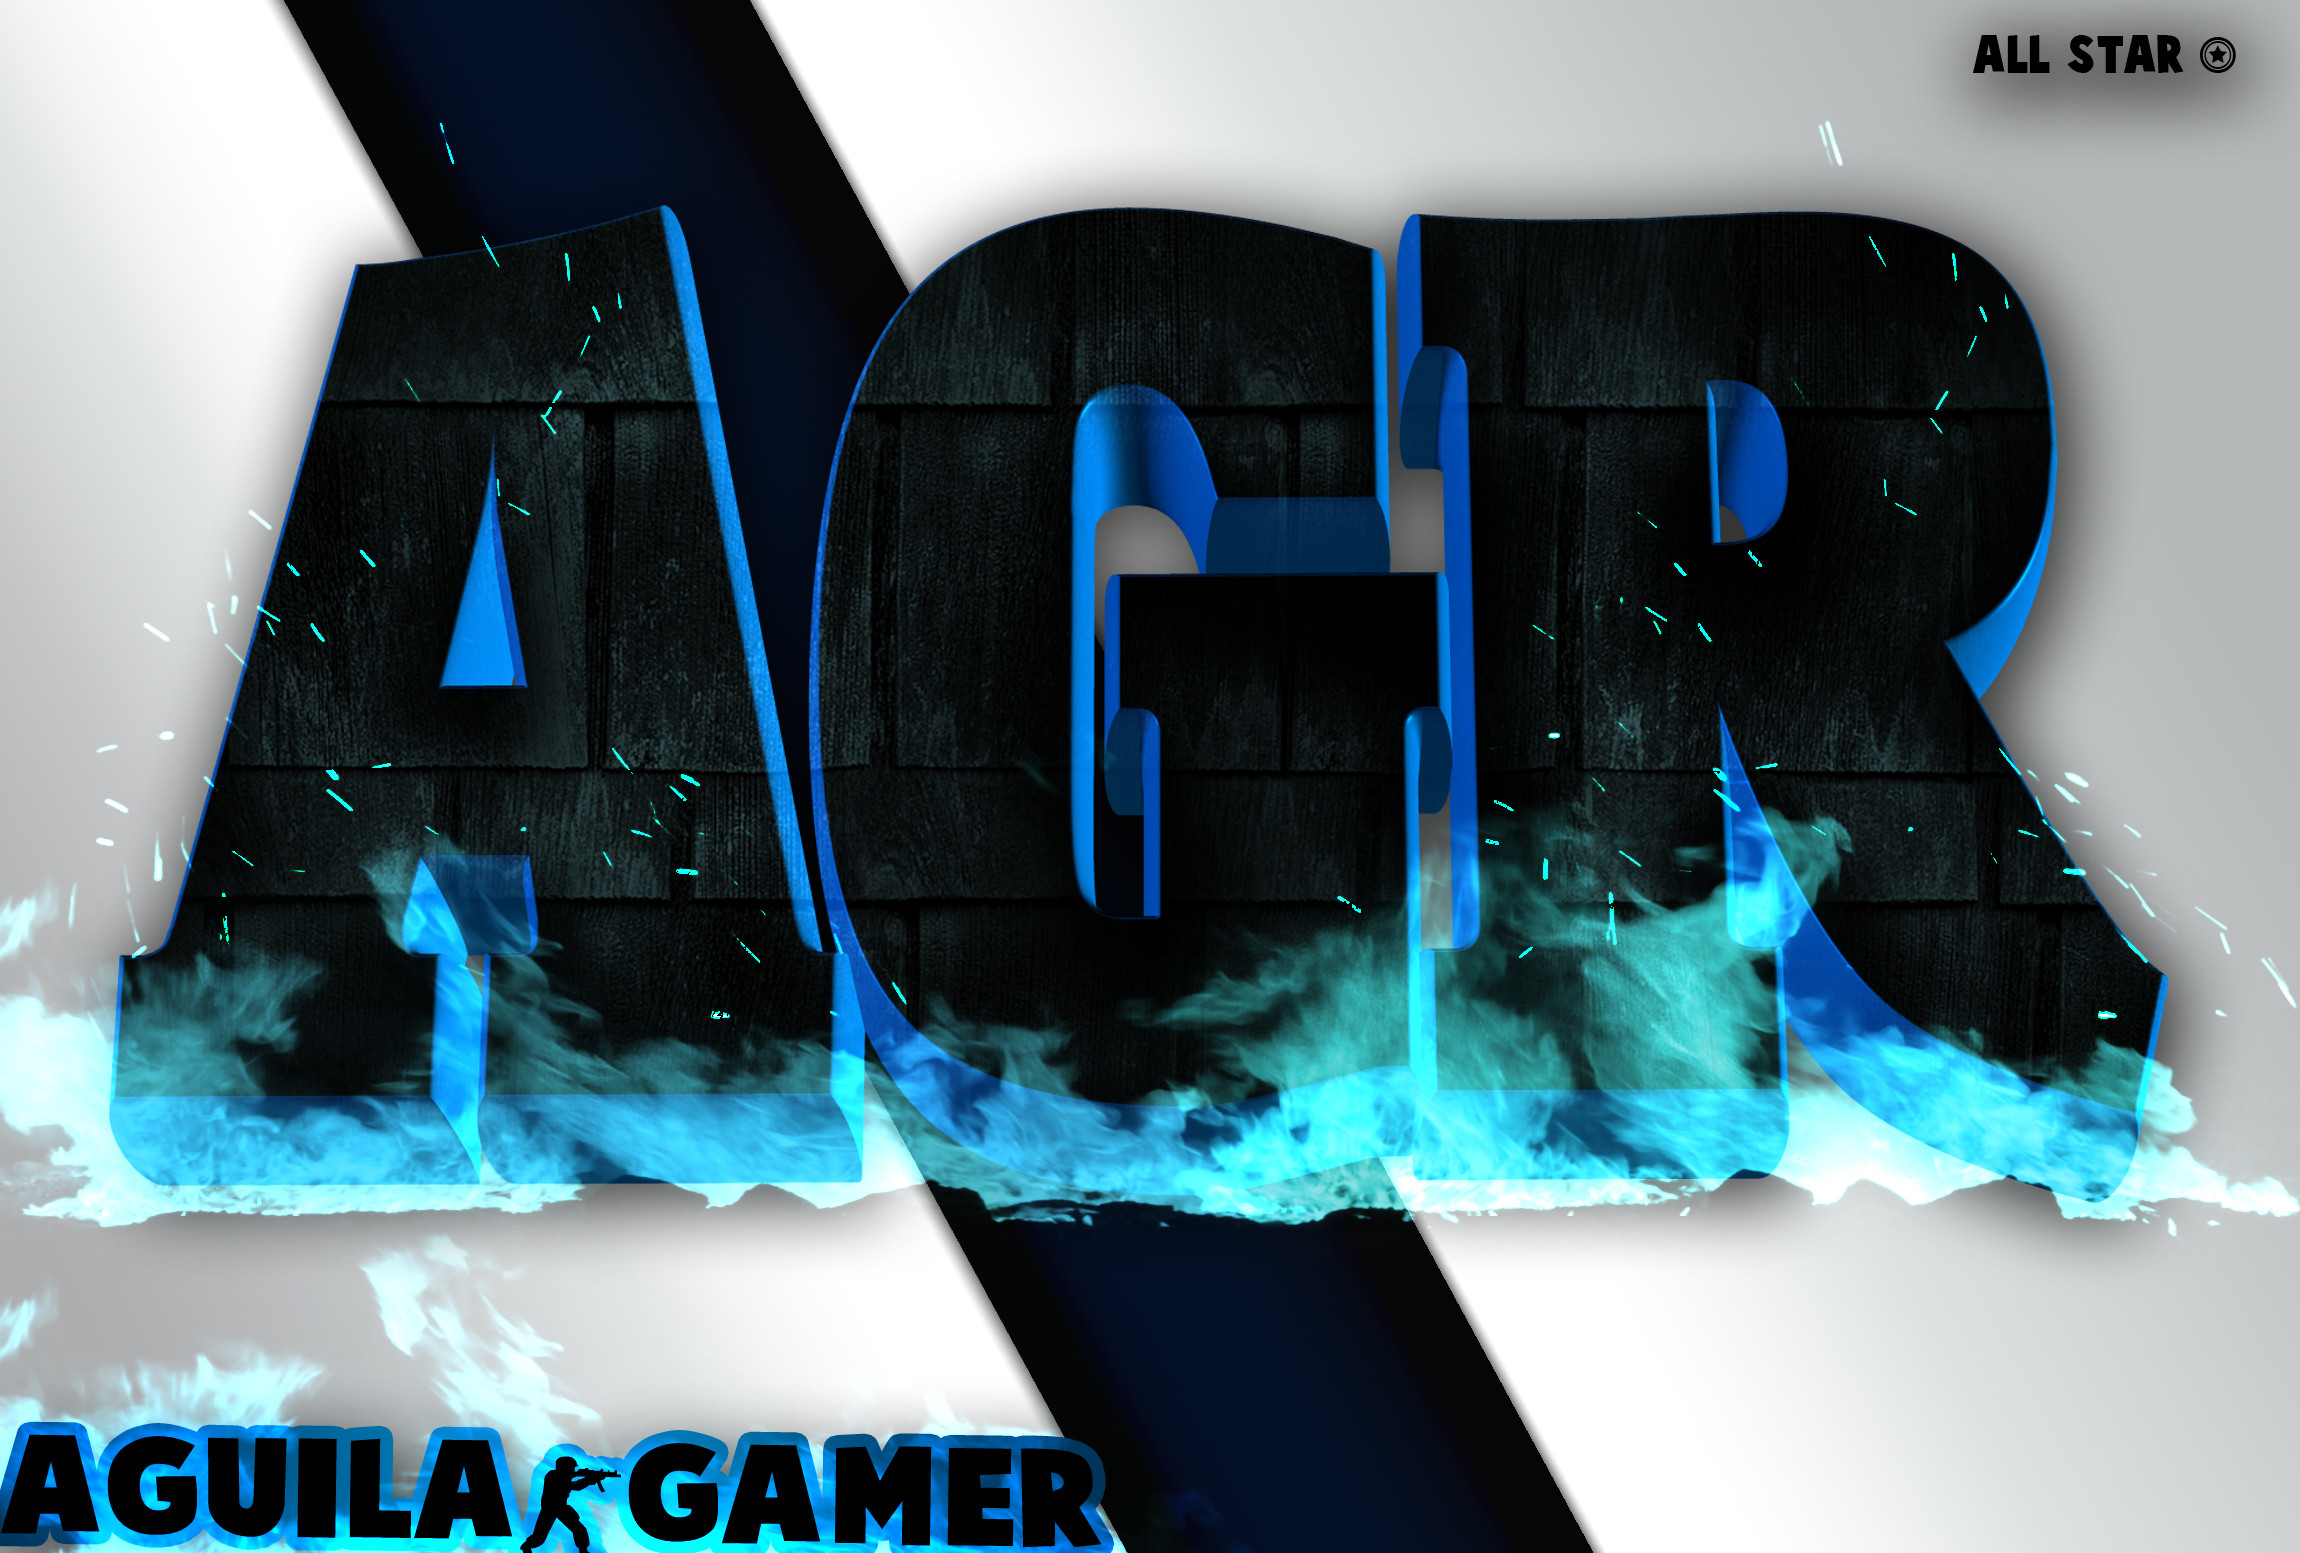 … Blue fire AGR logo/wallpaper by Thepedro0403